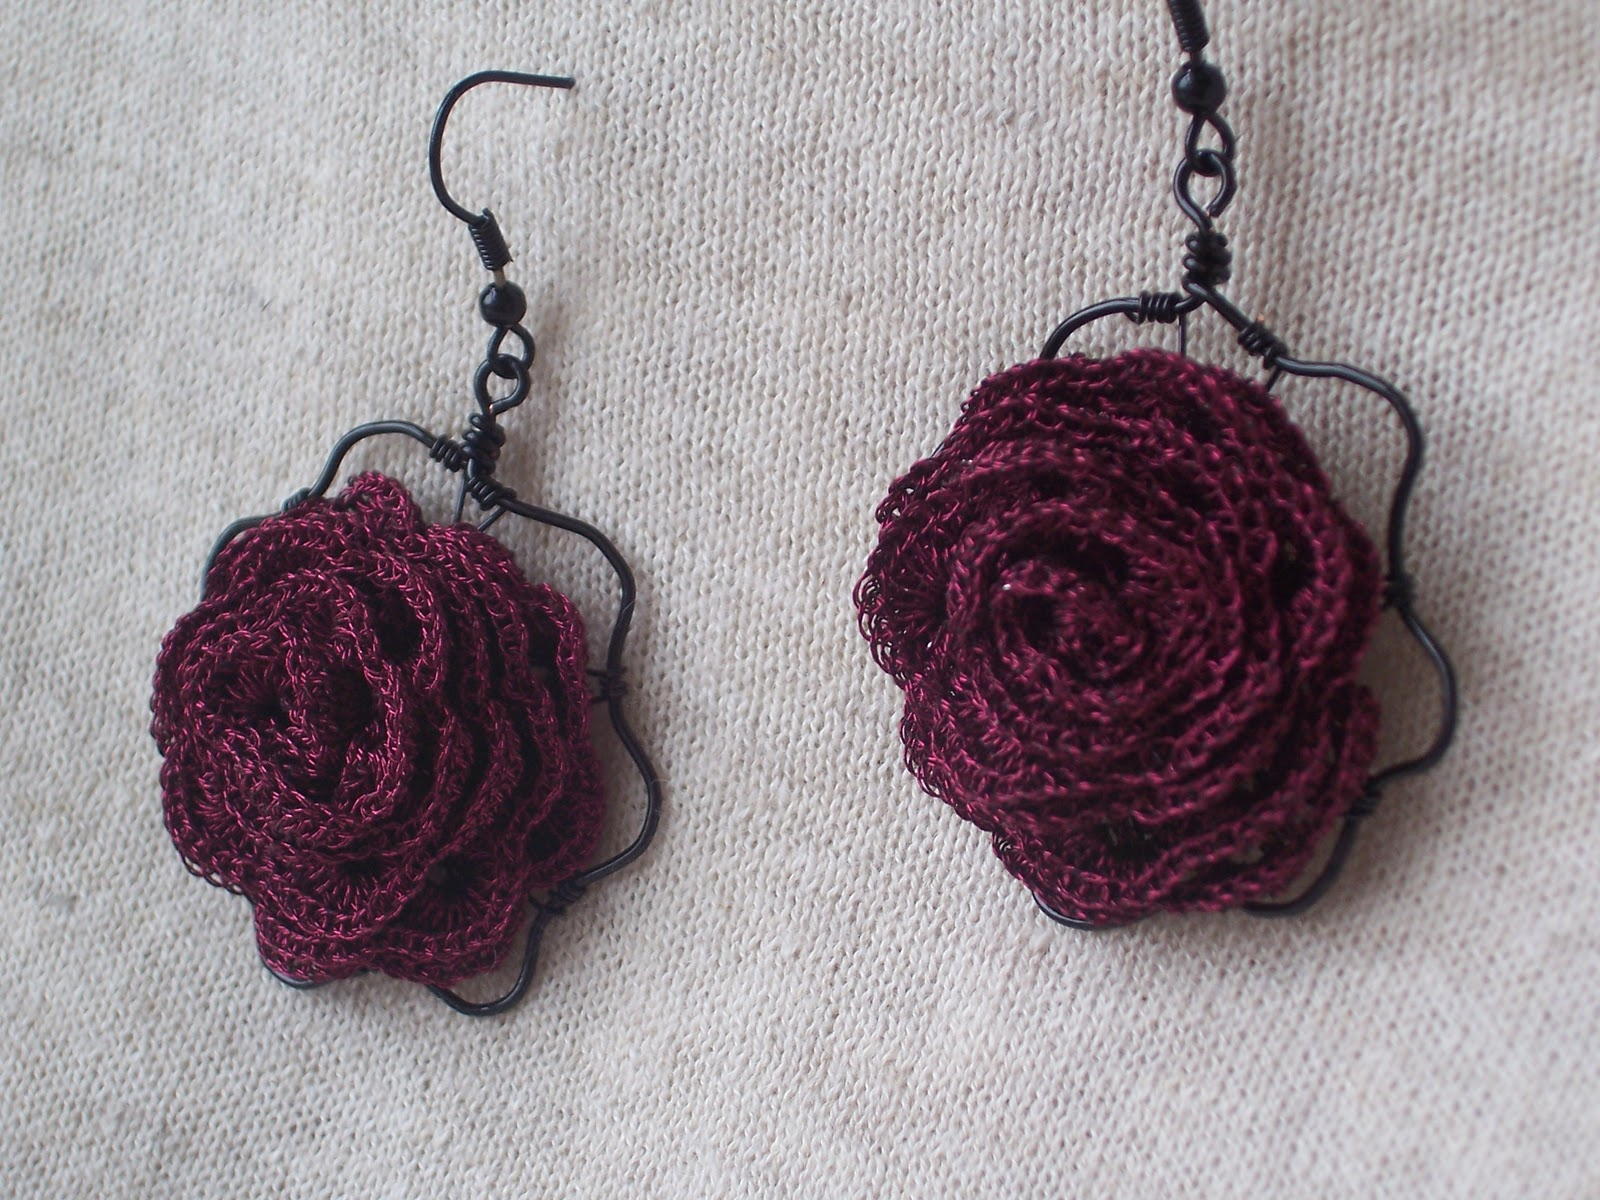 Crochet Earrings : Crochet earrings Dark Roses